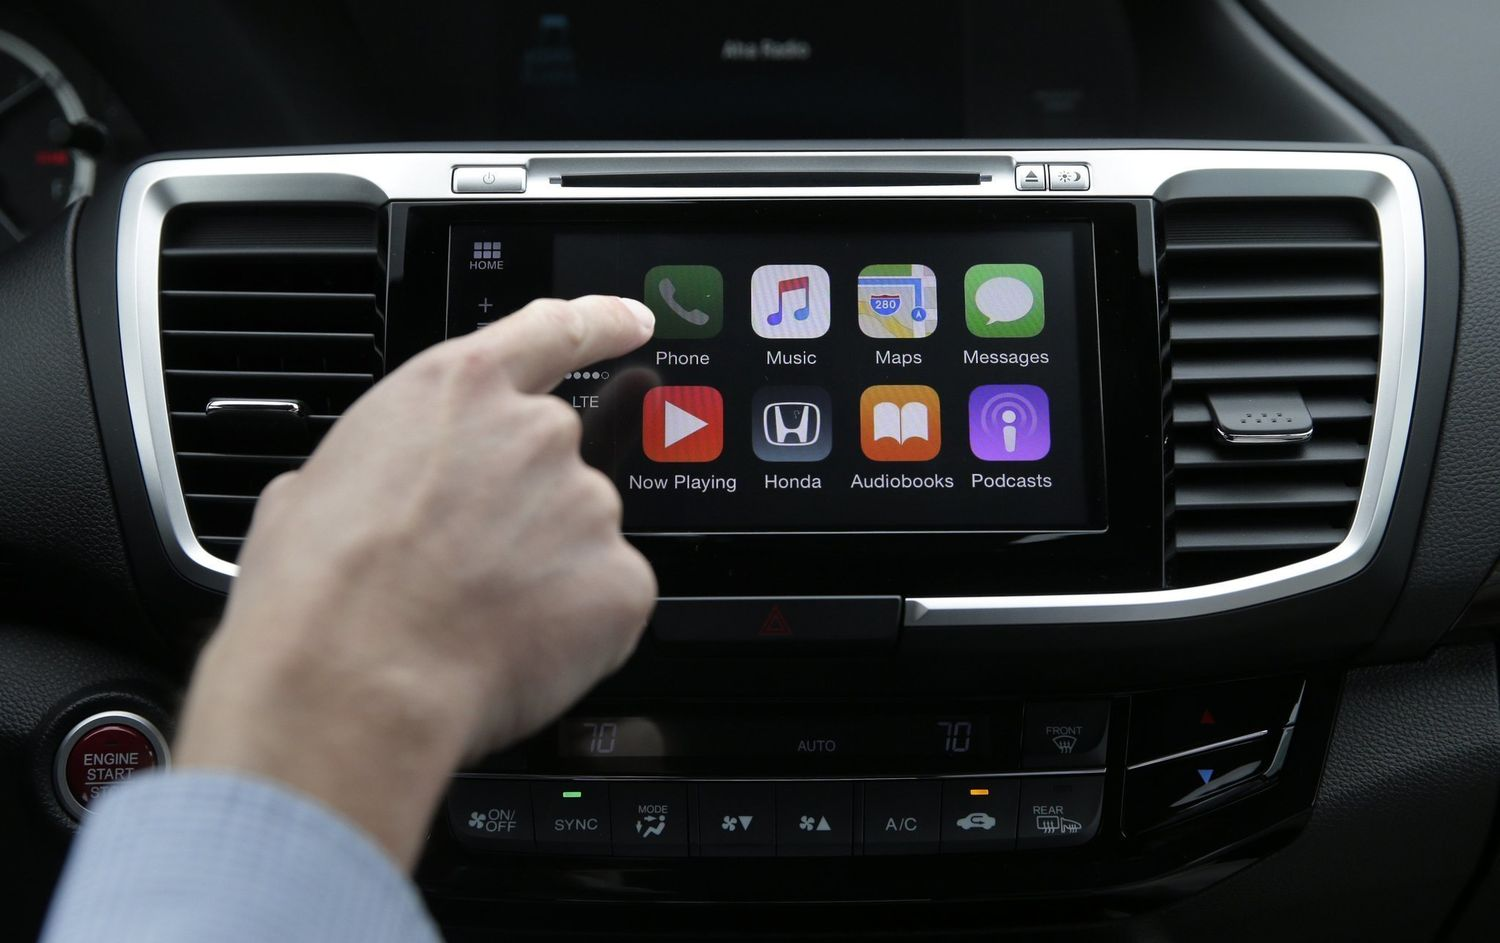 Tim cook admitted that Apple is working on a car with autopilot